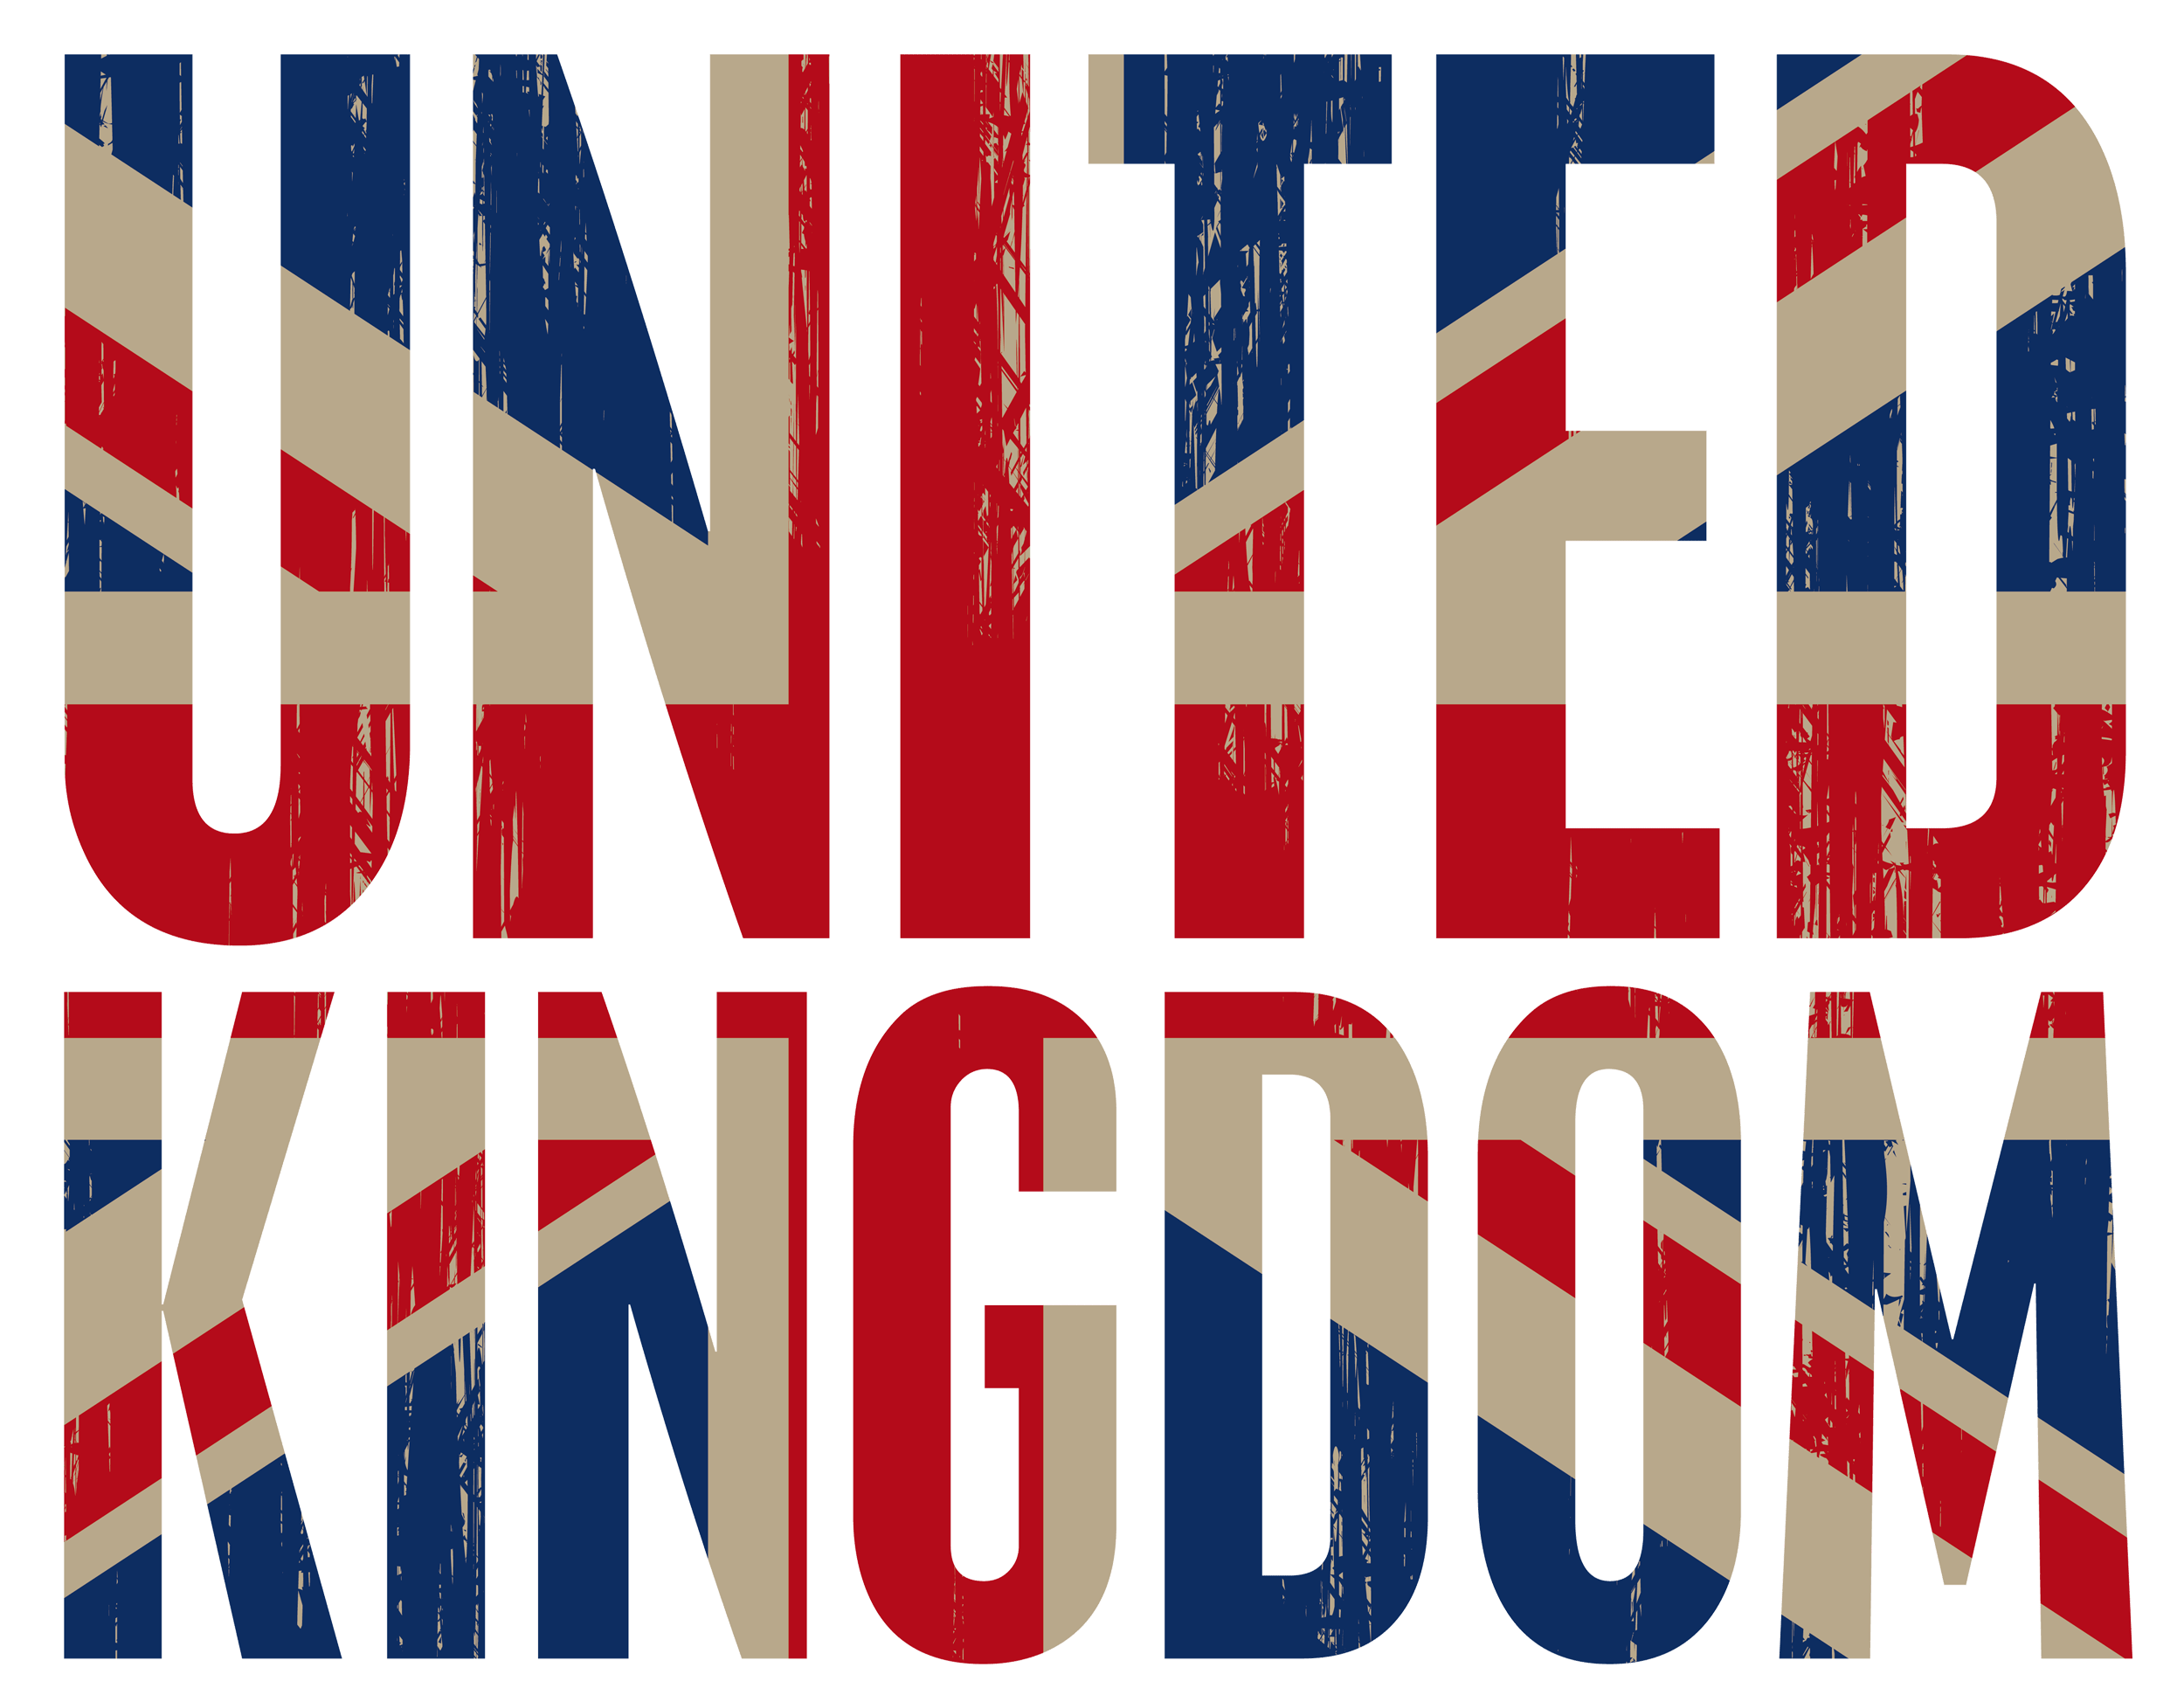 2003 in the United Kingdom